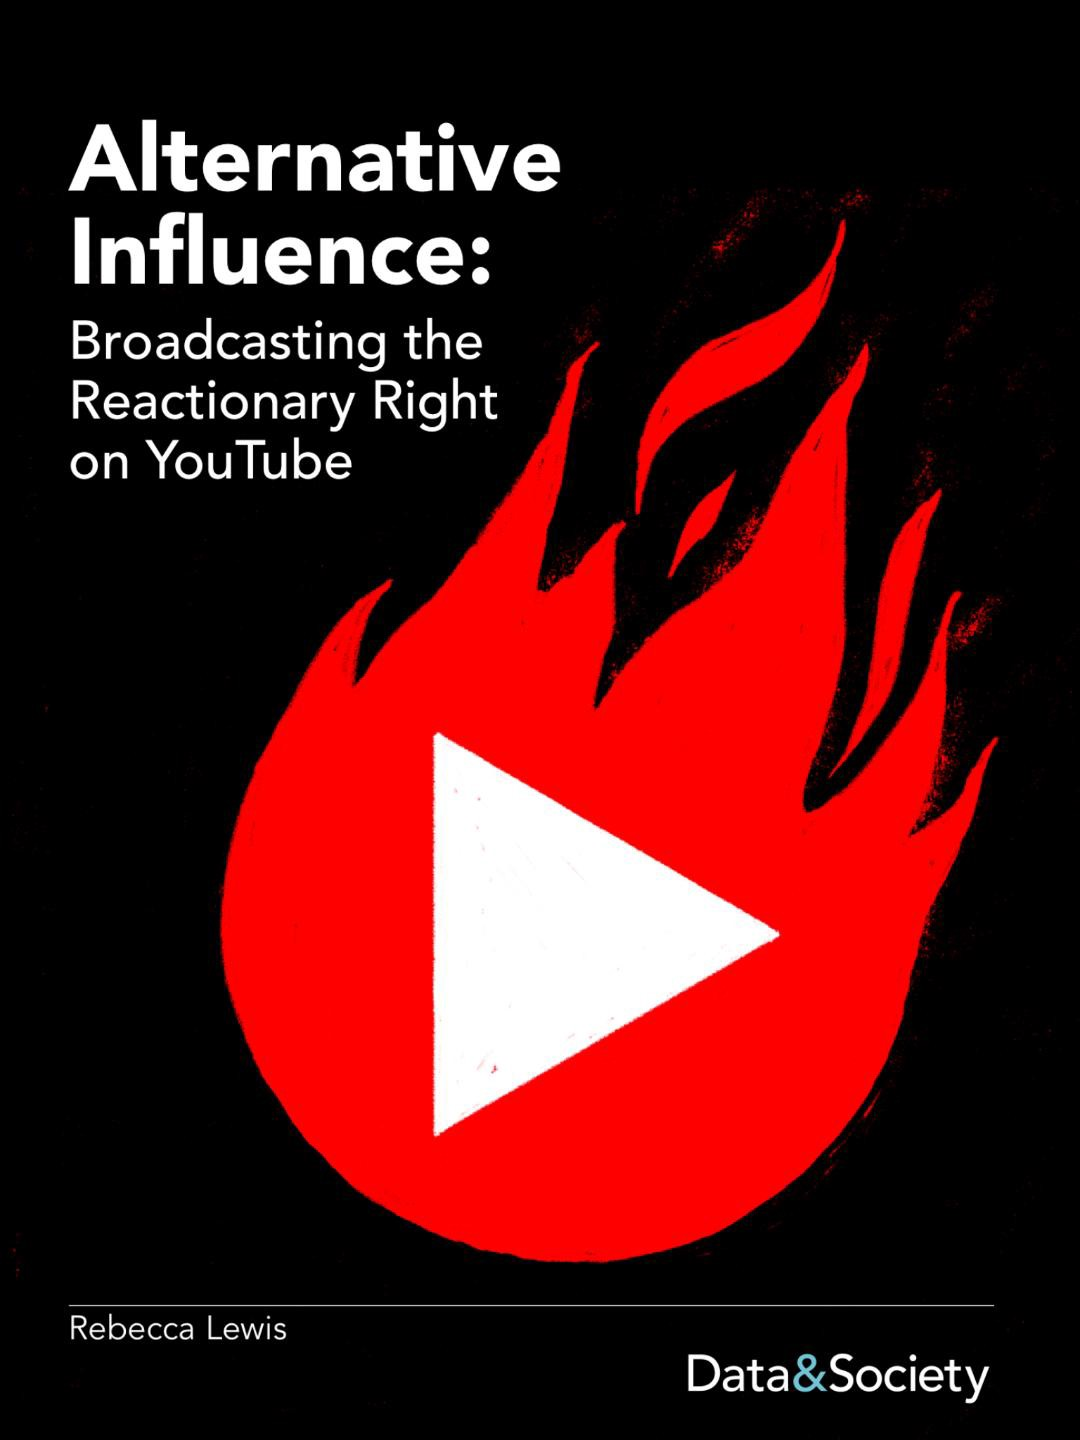 b22c06c3c6239c A Far-Left Conspiracy Theory  The Alternative Influence Network of Rebecca  Lewis